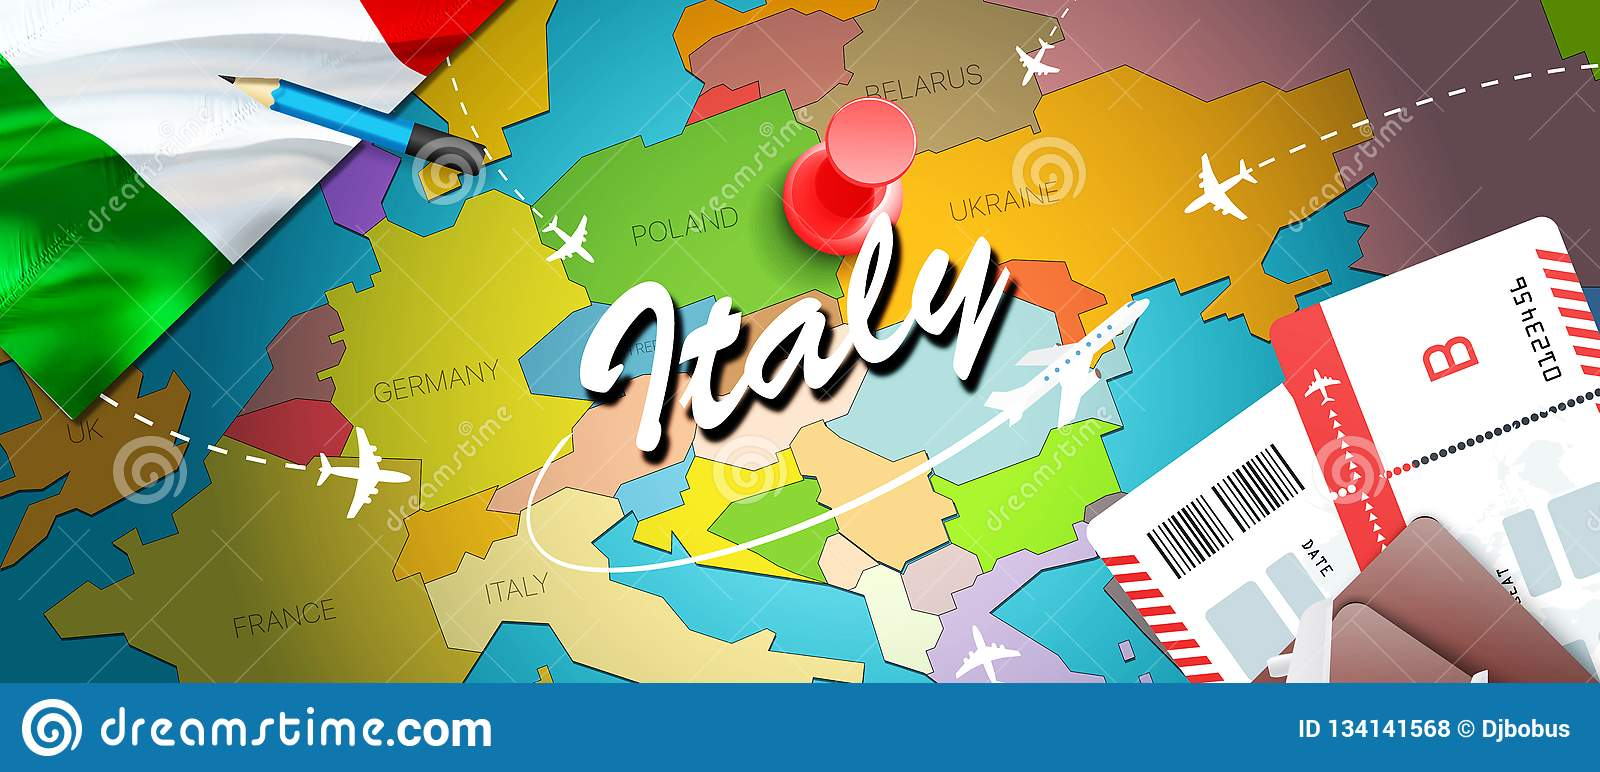 Italy travel concept map background with planes, tickets. Visit Italy travel and tourism destination concept. Italy flag on map.